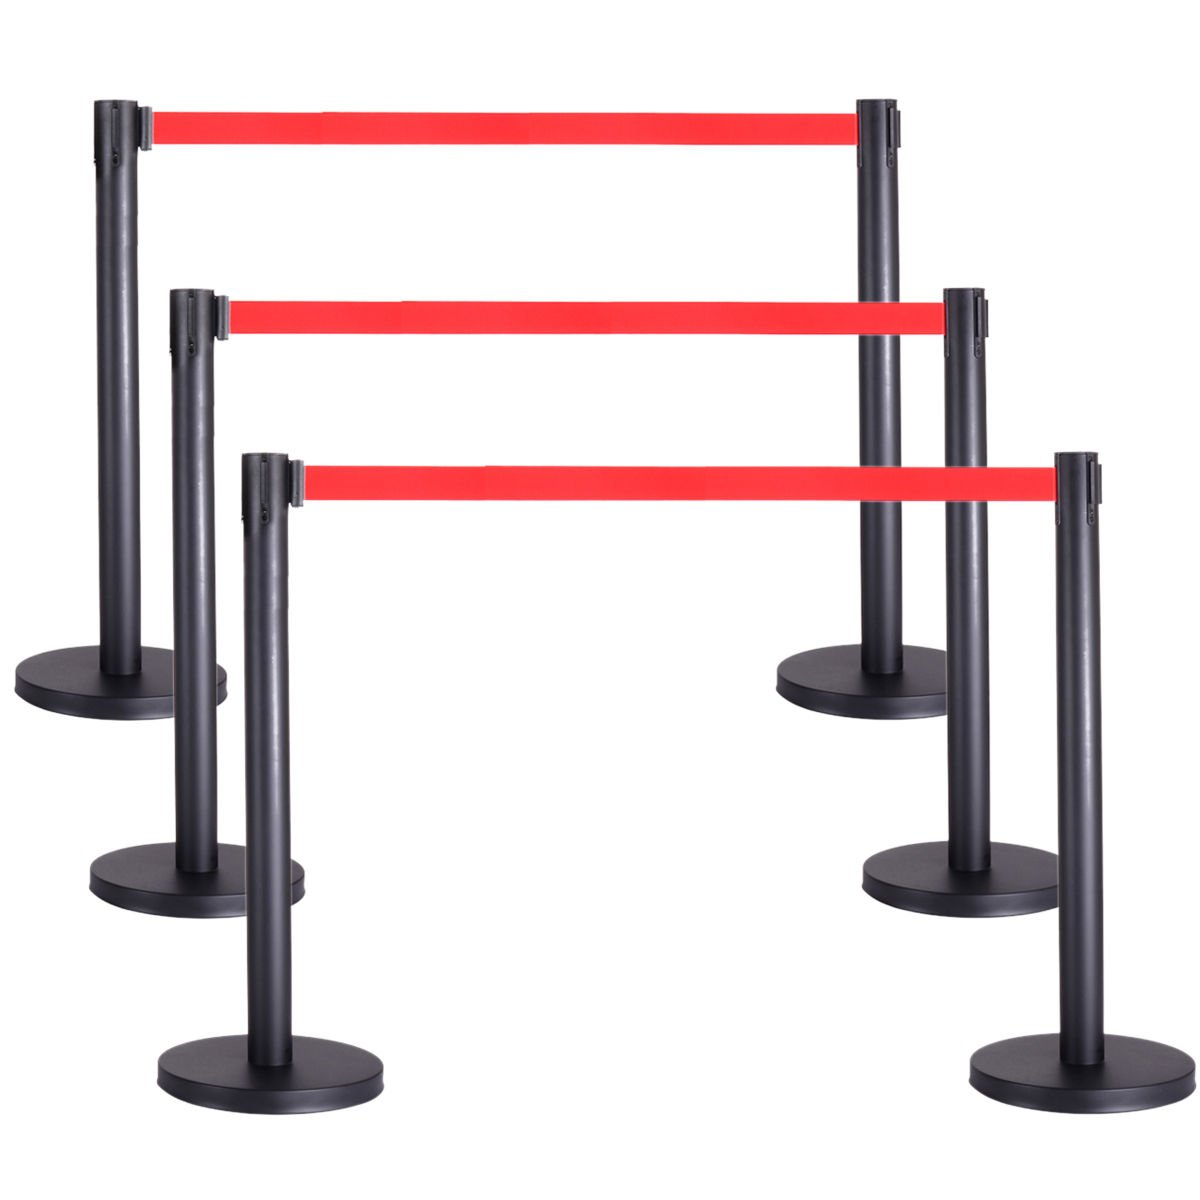 6 PCS Crowd Control Barrier Stanchion Posts Queue Pole Retractable Red Belt